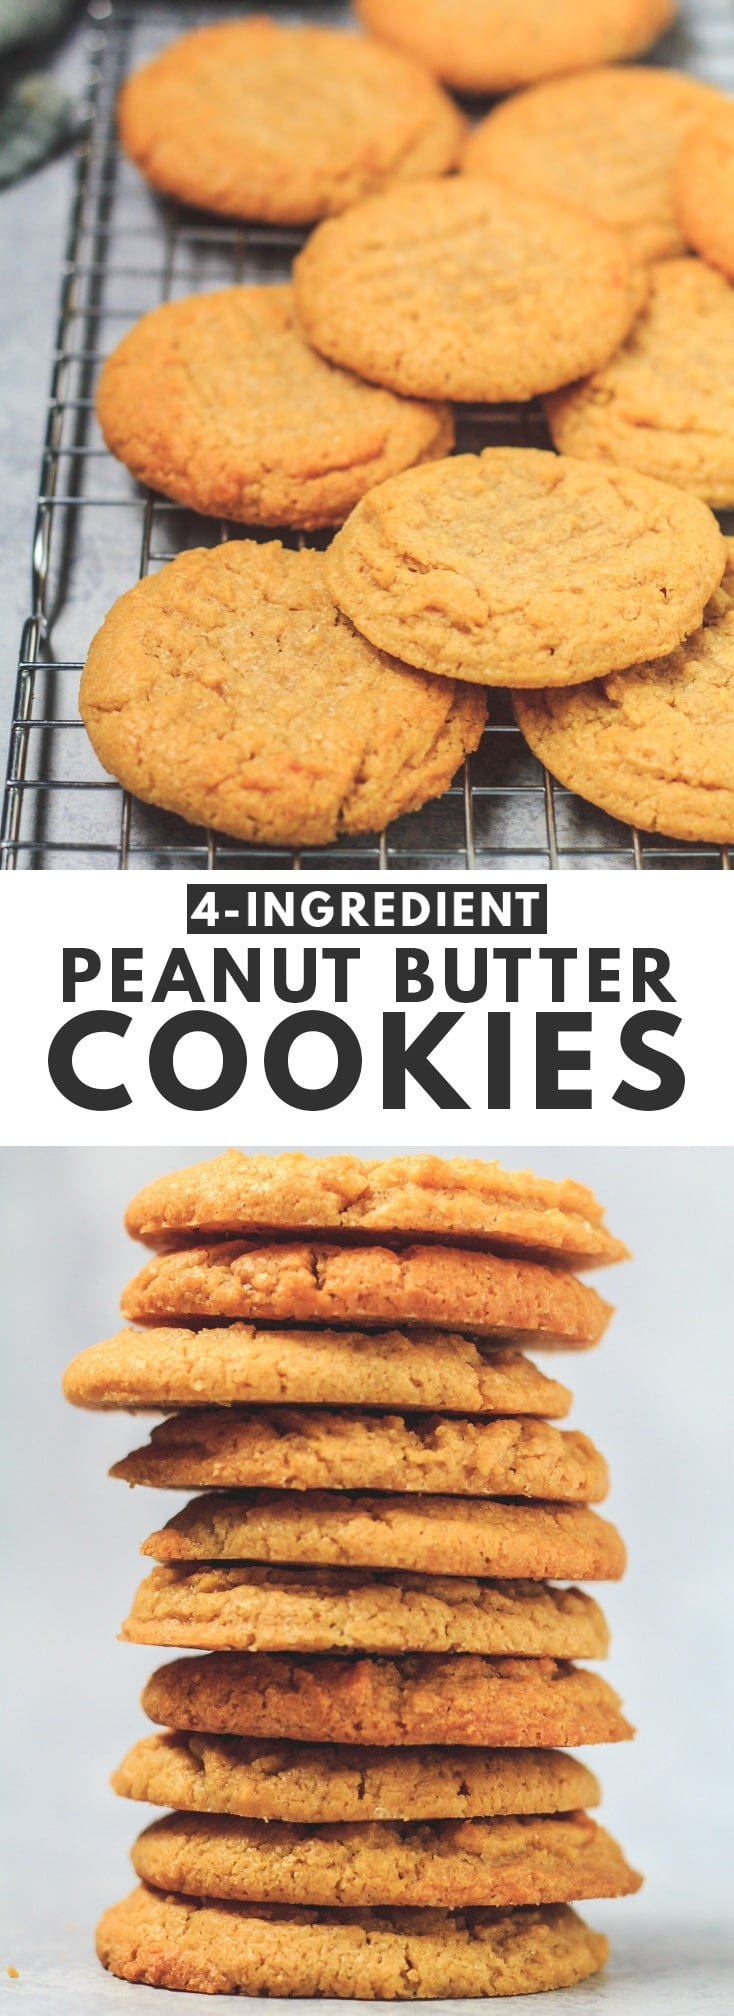 4 Ingredient Peanut Butter Cookies - Deliciously soft, thick, and chewy peanut butter cookies that are loaded with flavour, and are only made from four simple ingredients! #peanutbutter #cookies #recipe